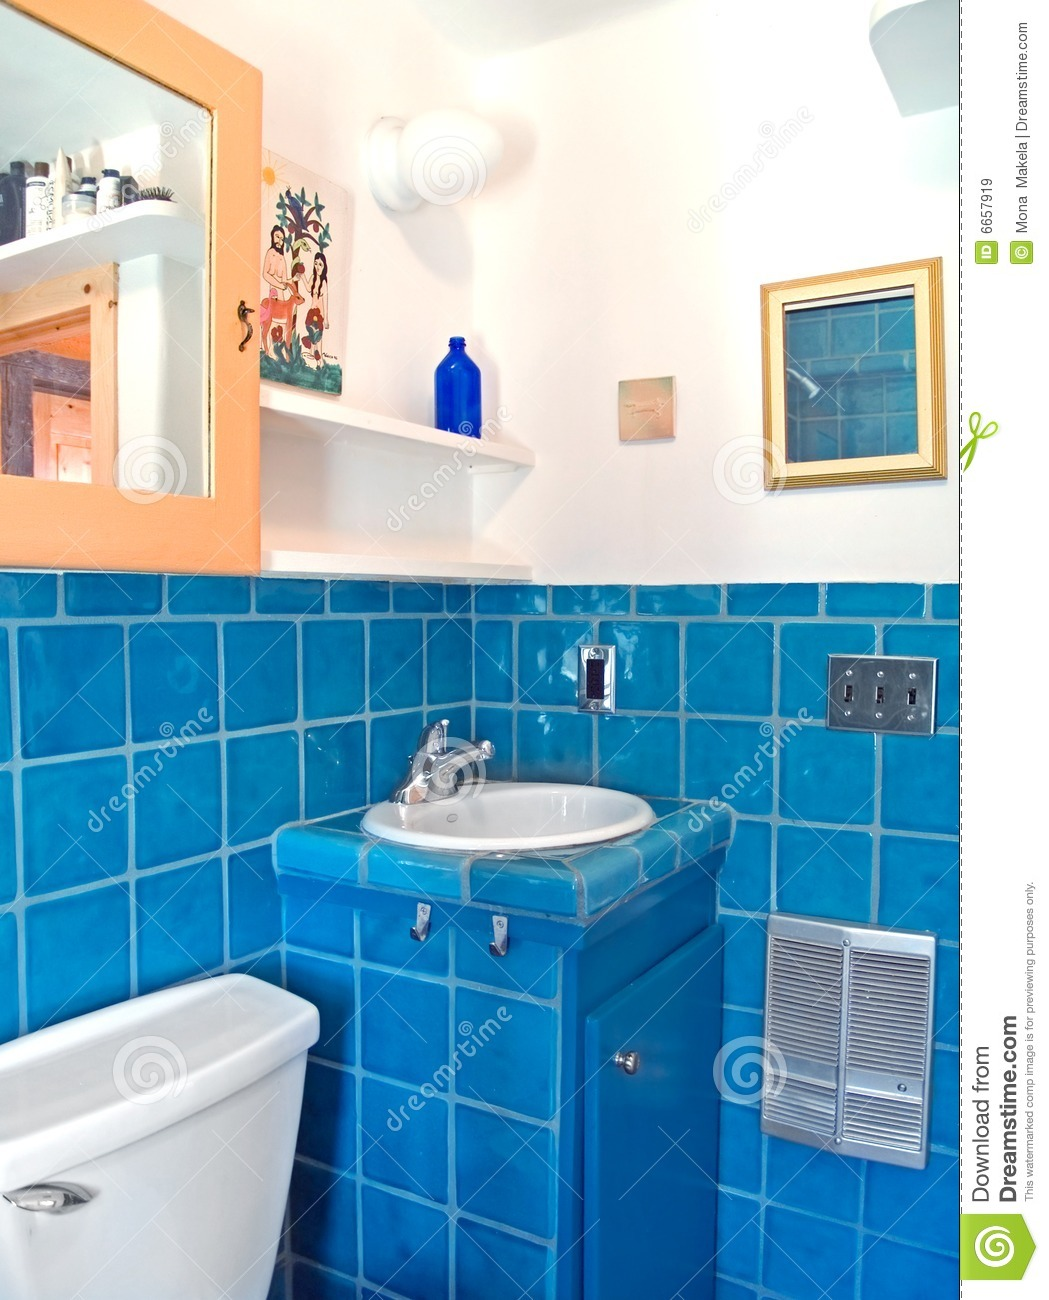 Turquoise tile work in a bathroom royalty free stock images image